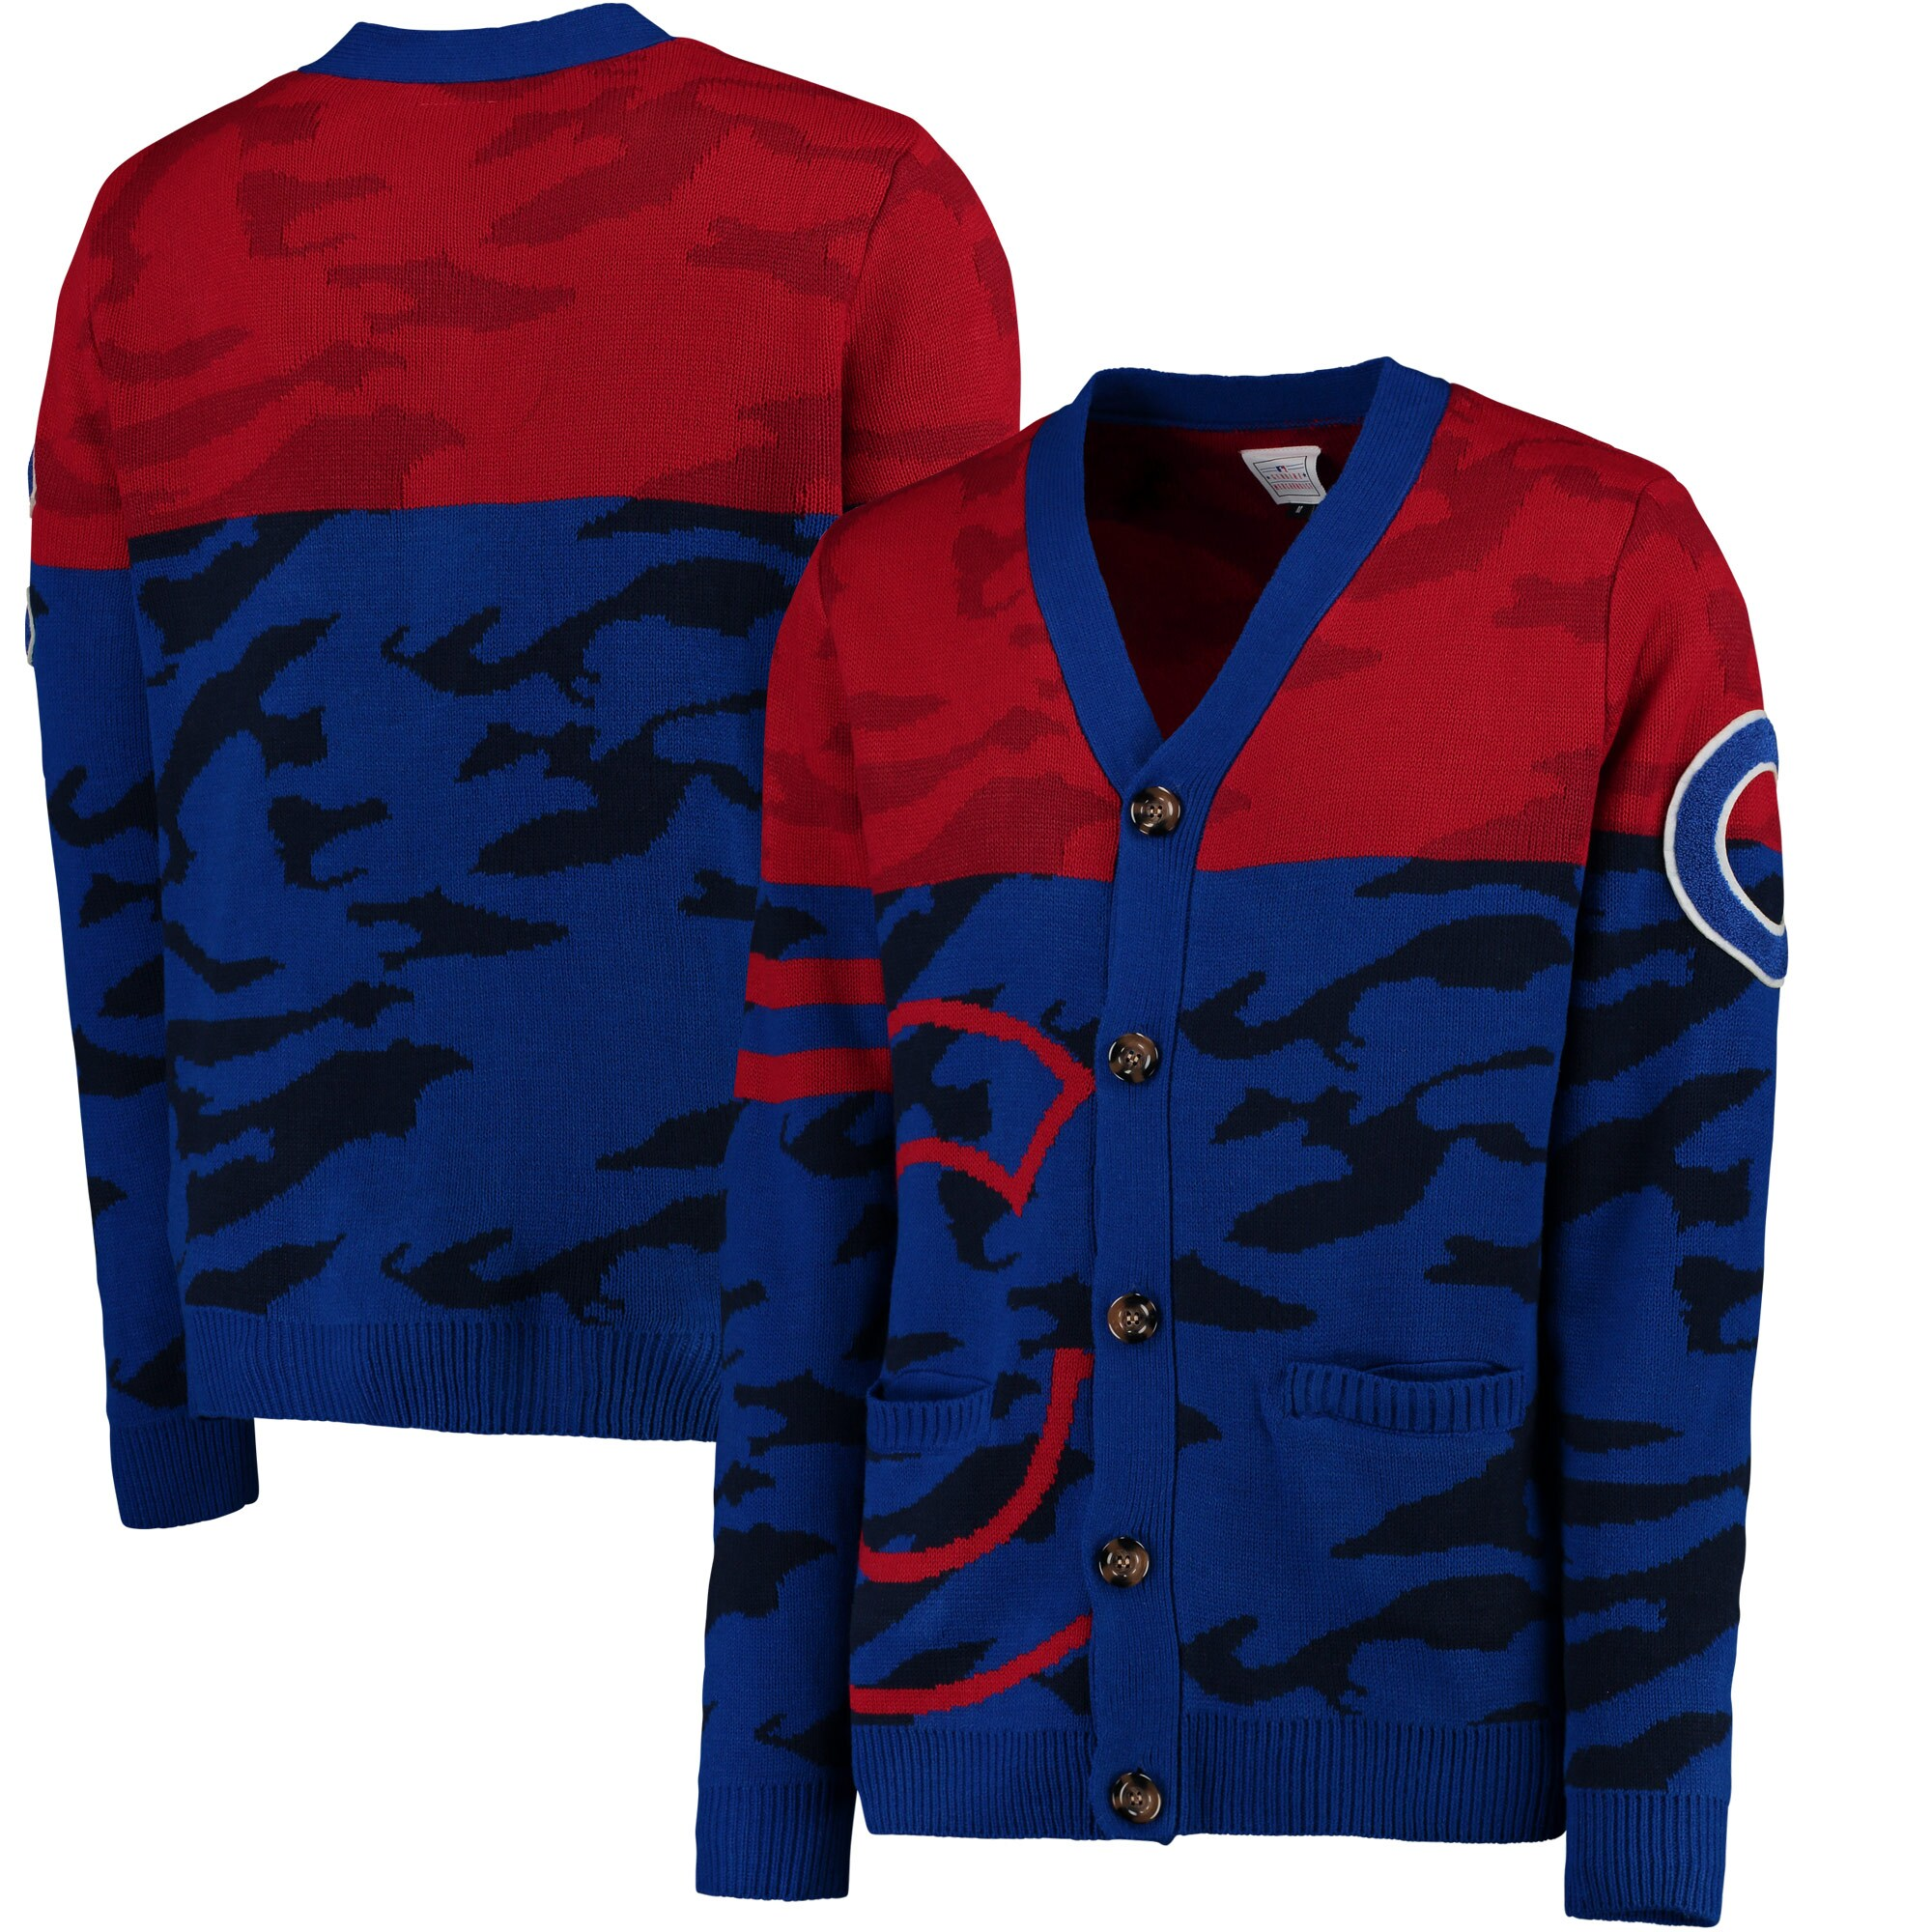 Chicago Cubs Camouflage Cardigan Sweater - Royal